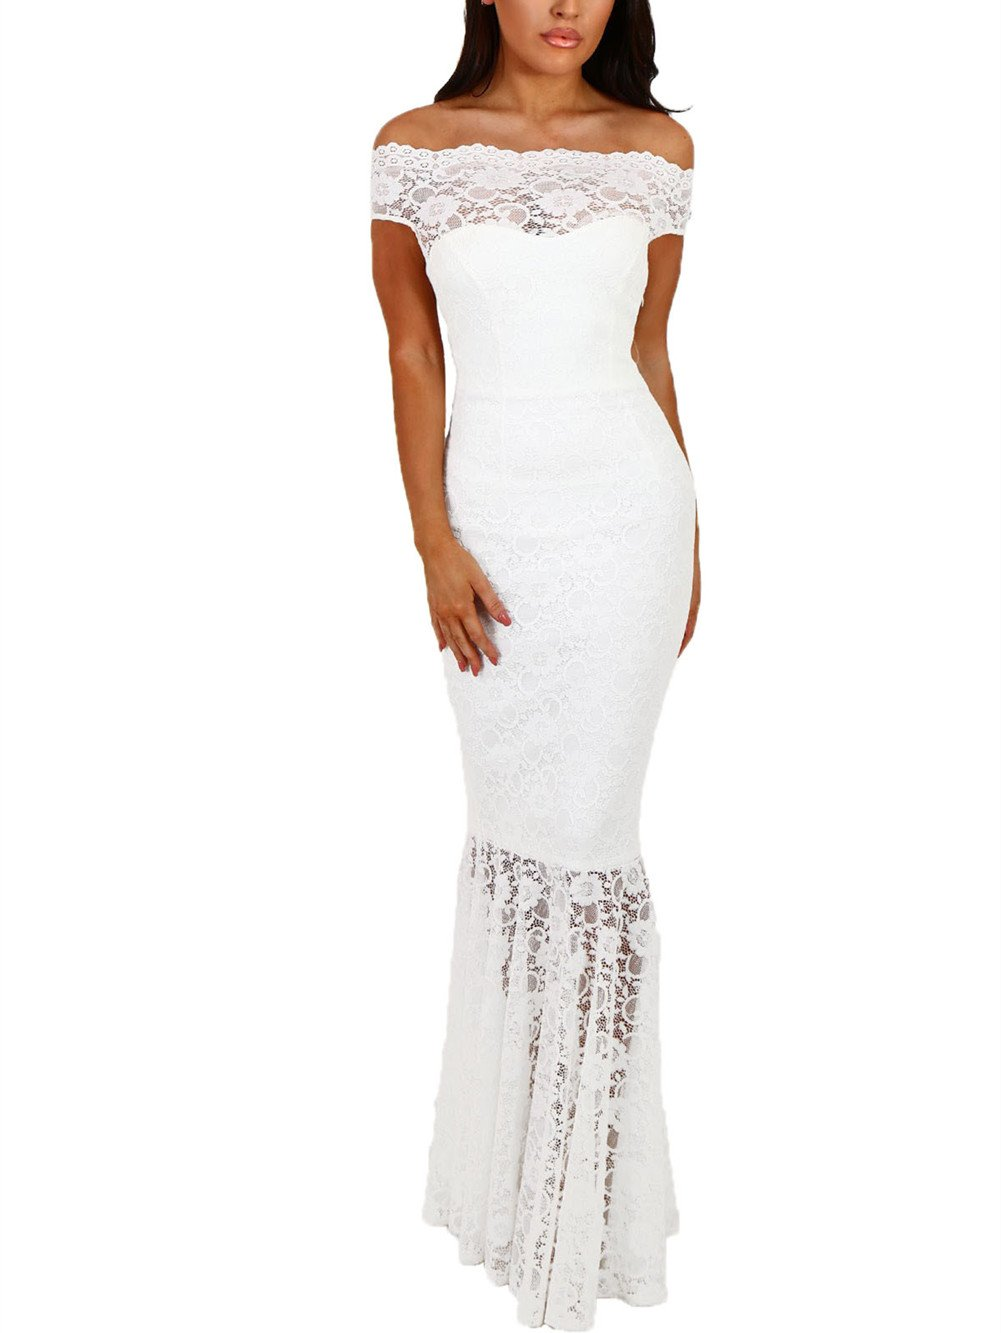 15a3e9c3c7111 Galleon - Elapsy Womens Sexy Off Shoulder Bardot Lace Bridesmaid Evening  Wedding Gowns Fishtail Maxi Dress White Large